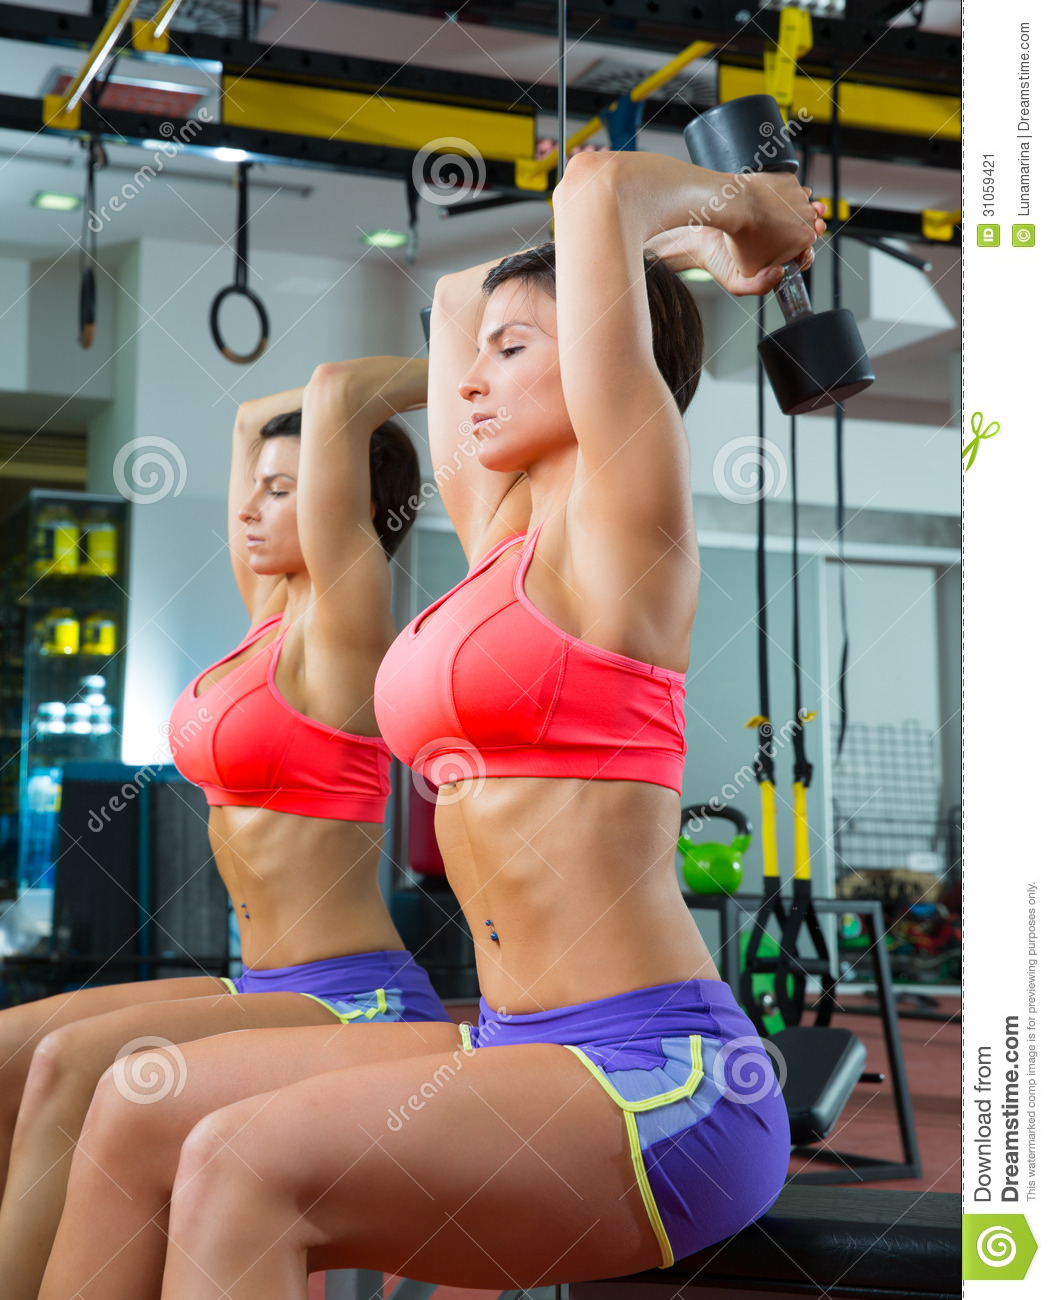 Crossfit Fitness Weight Lifting Dumbbell Woman At Mirror ...